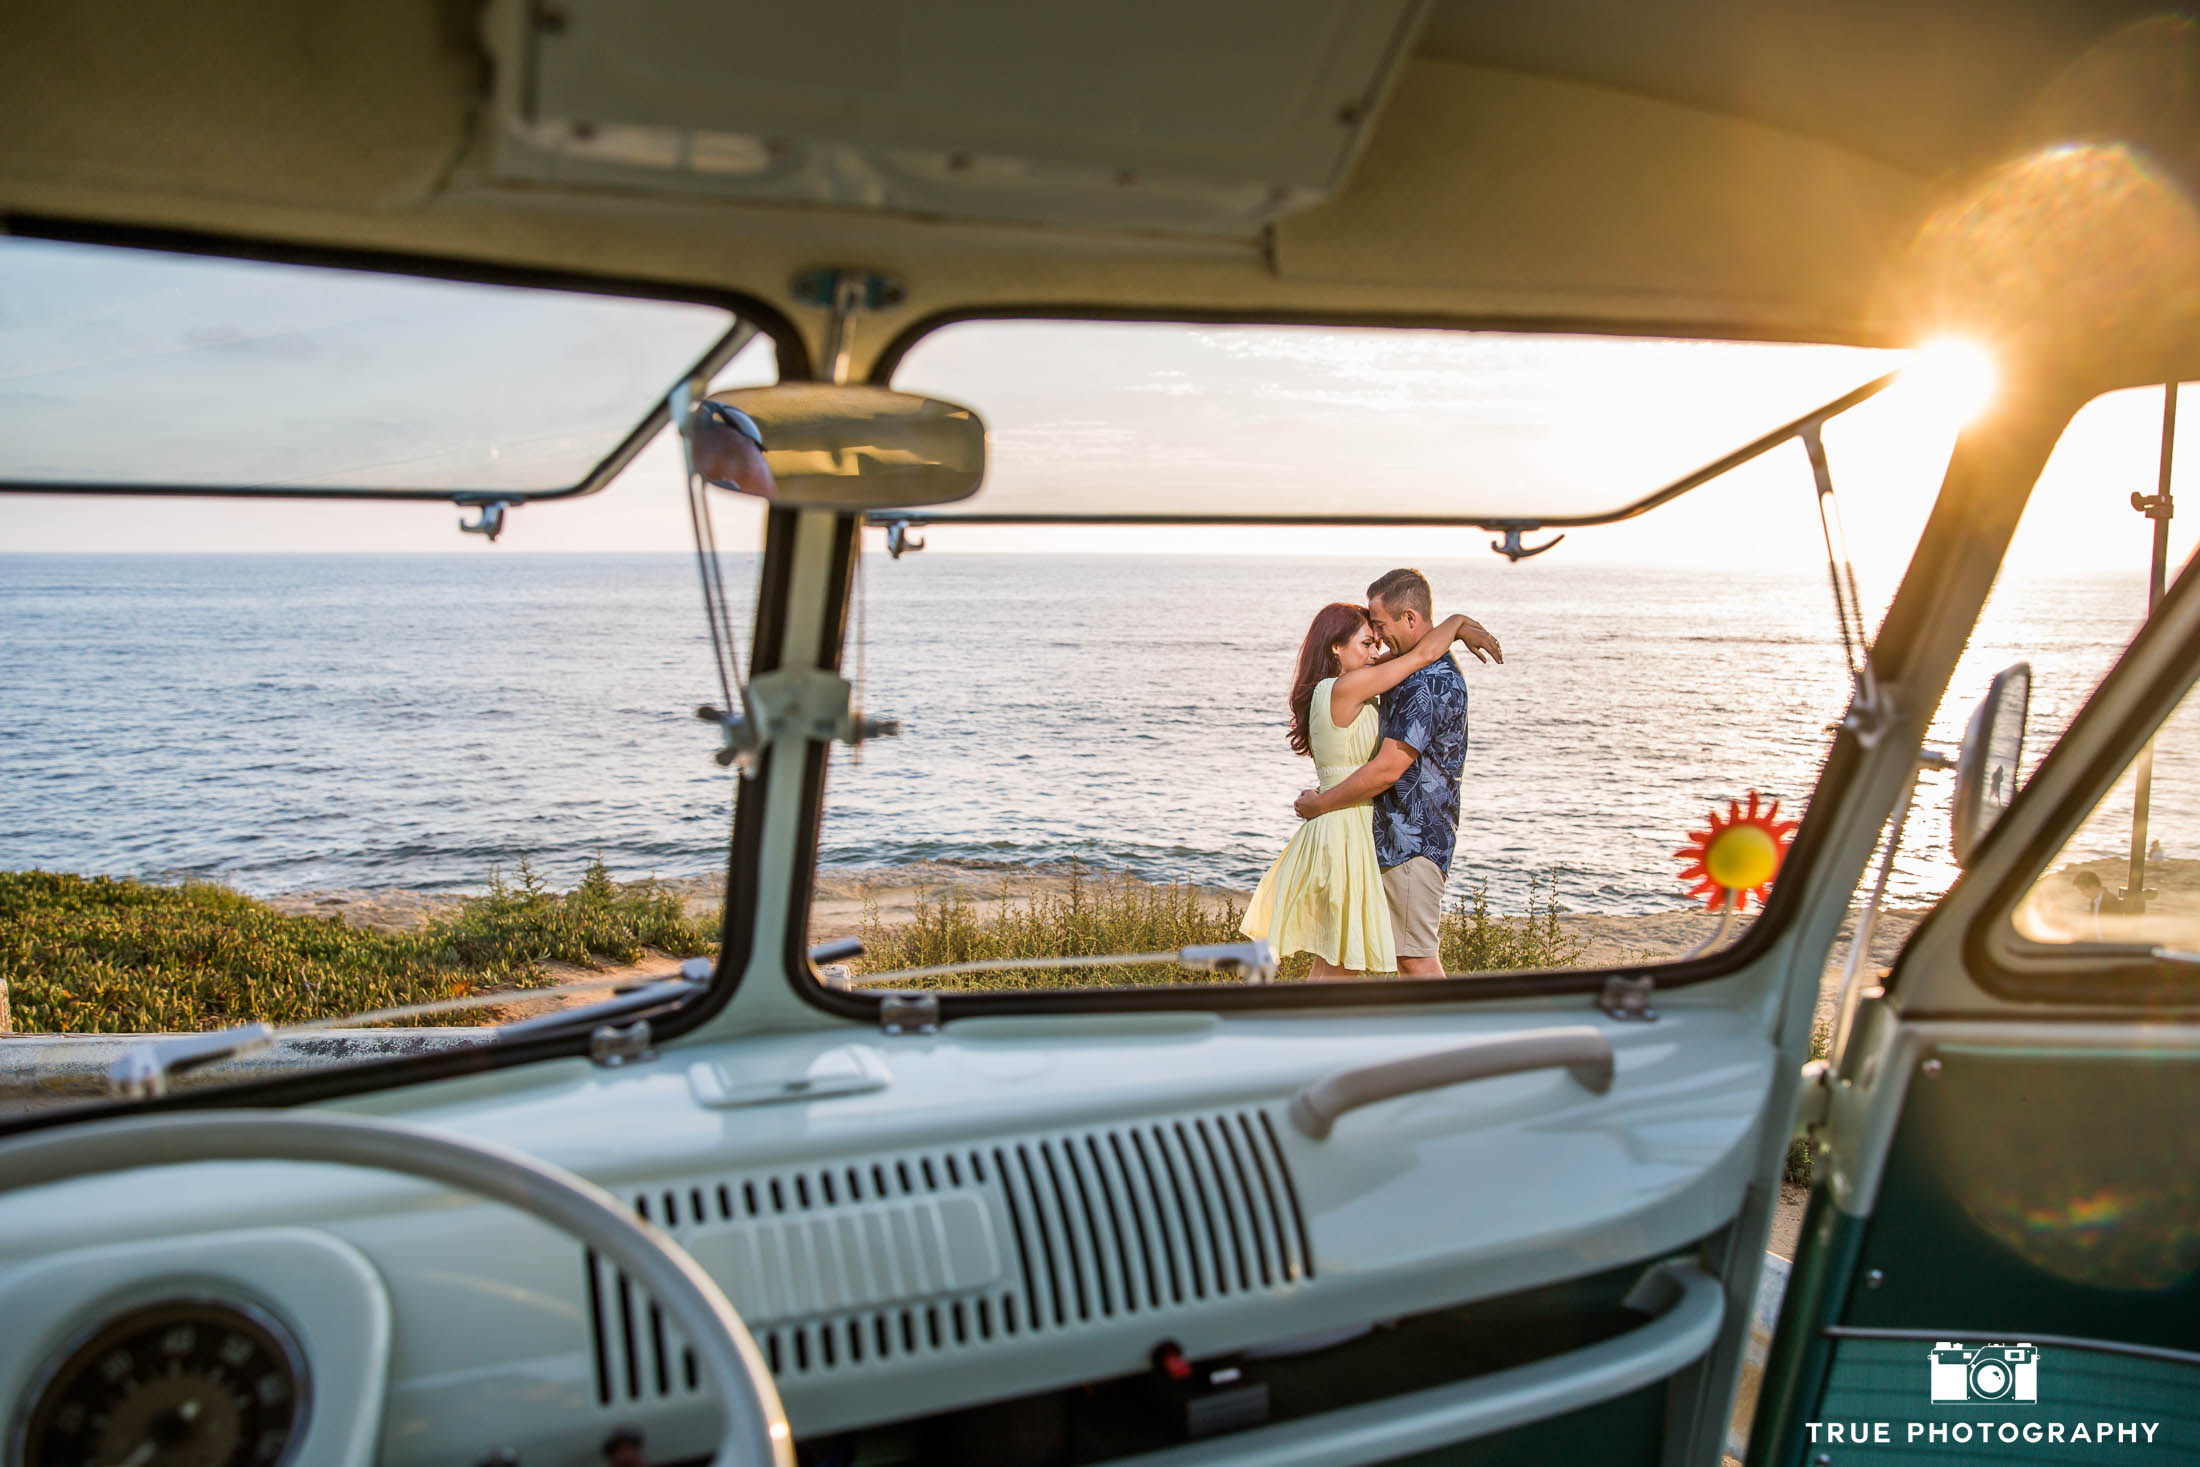 Unique photo of engaged couple embracing during sunset through window of vintage Volkswagen bus during beach engagement session